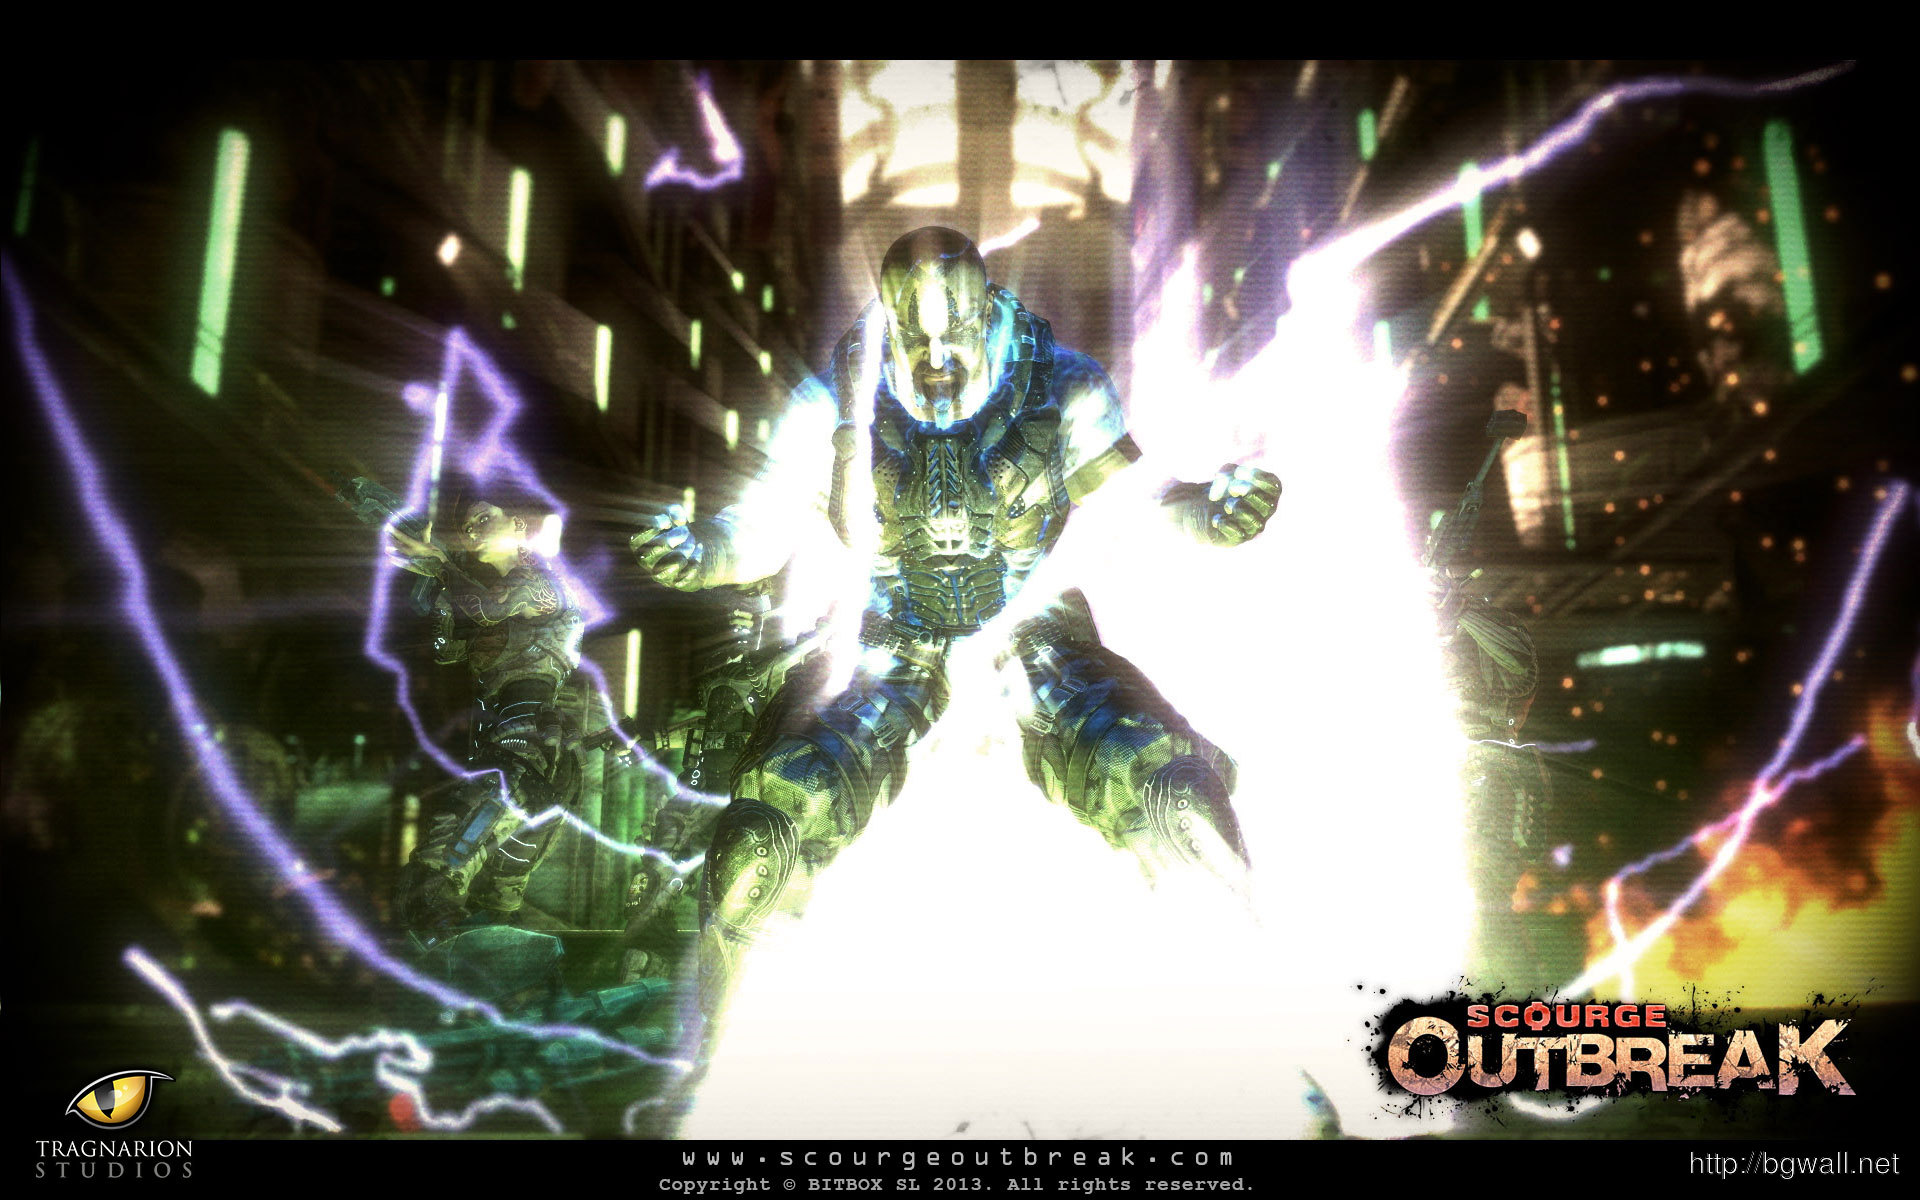 Download Scourge Outbreak Wallpaper Shockwave High Resolution Full Size